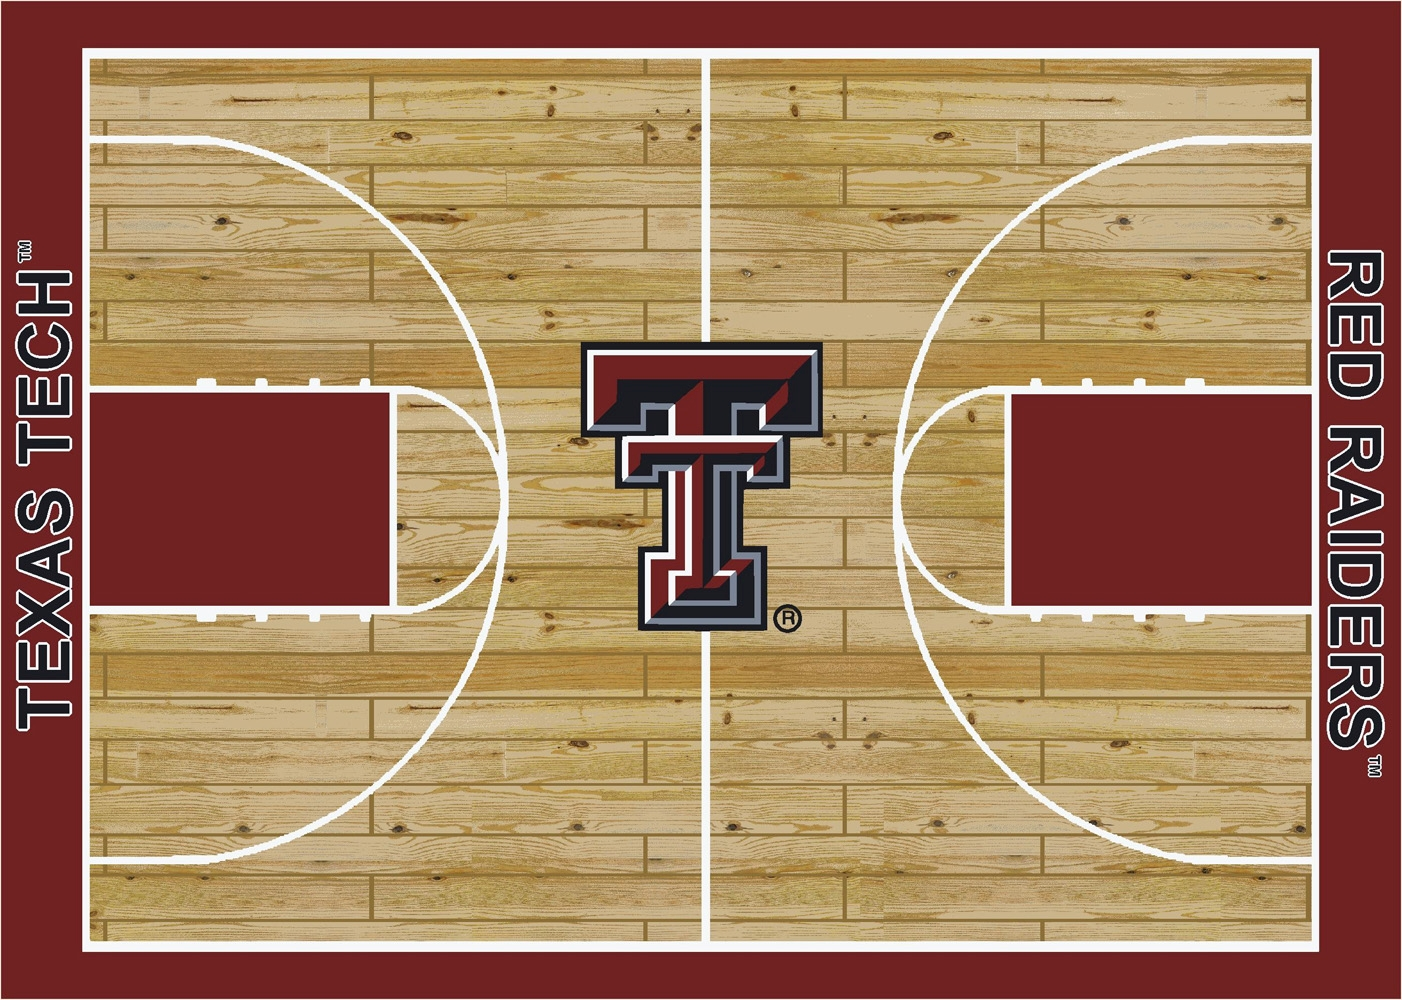 College basketball court texas tech university 100 for Average basketball court size